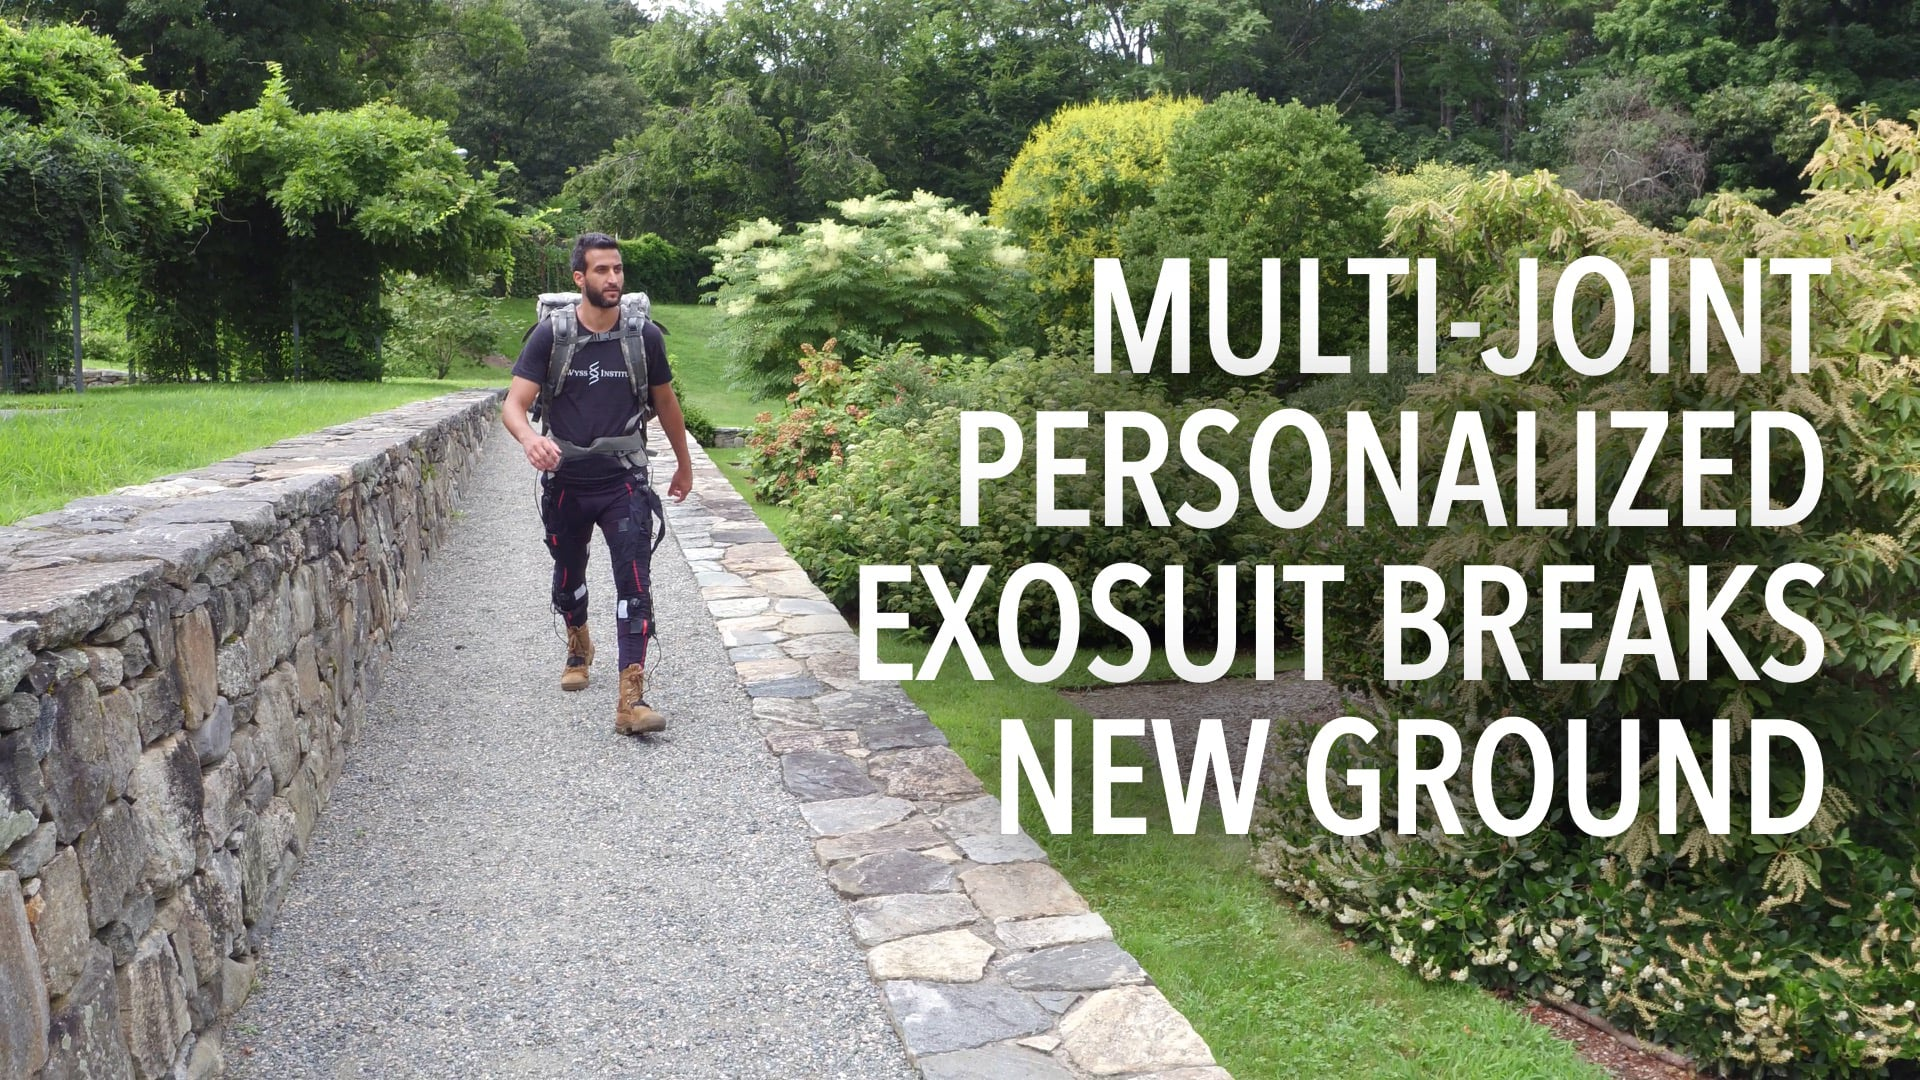 Multi-joint Personalized Soft Exosuit Breaks New Ground